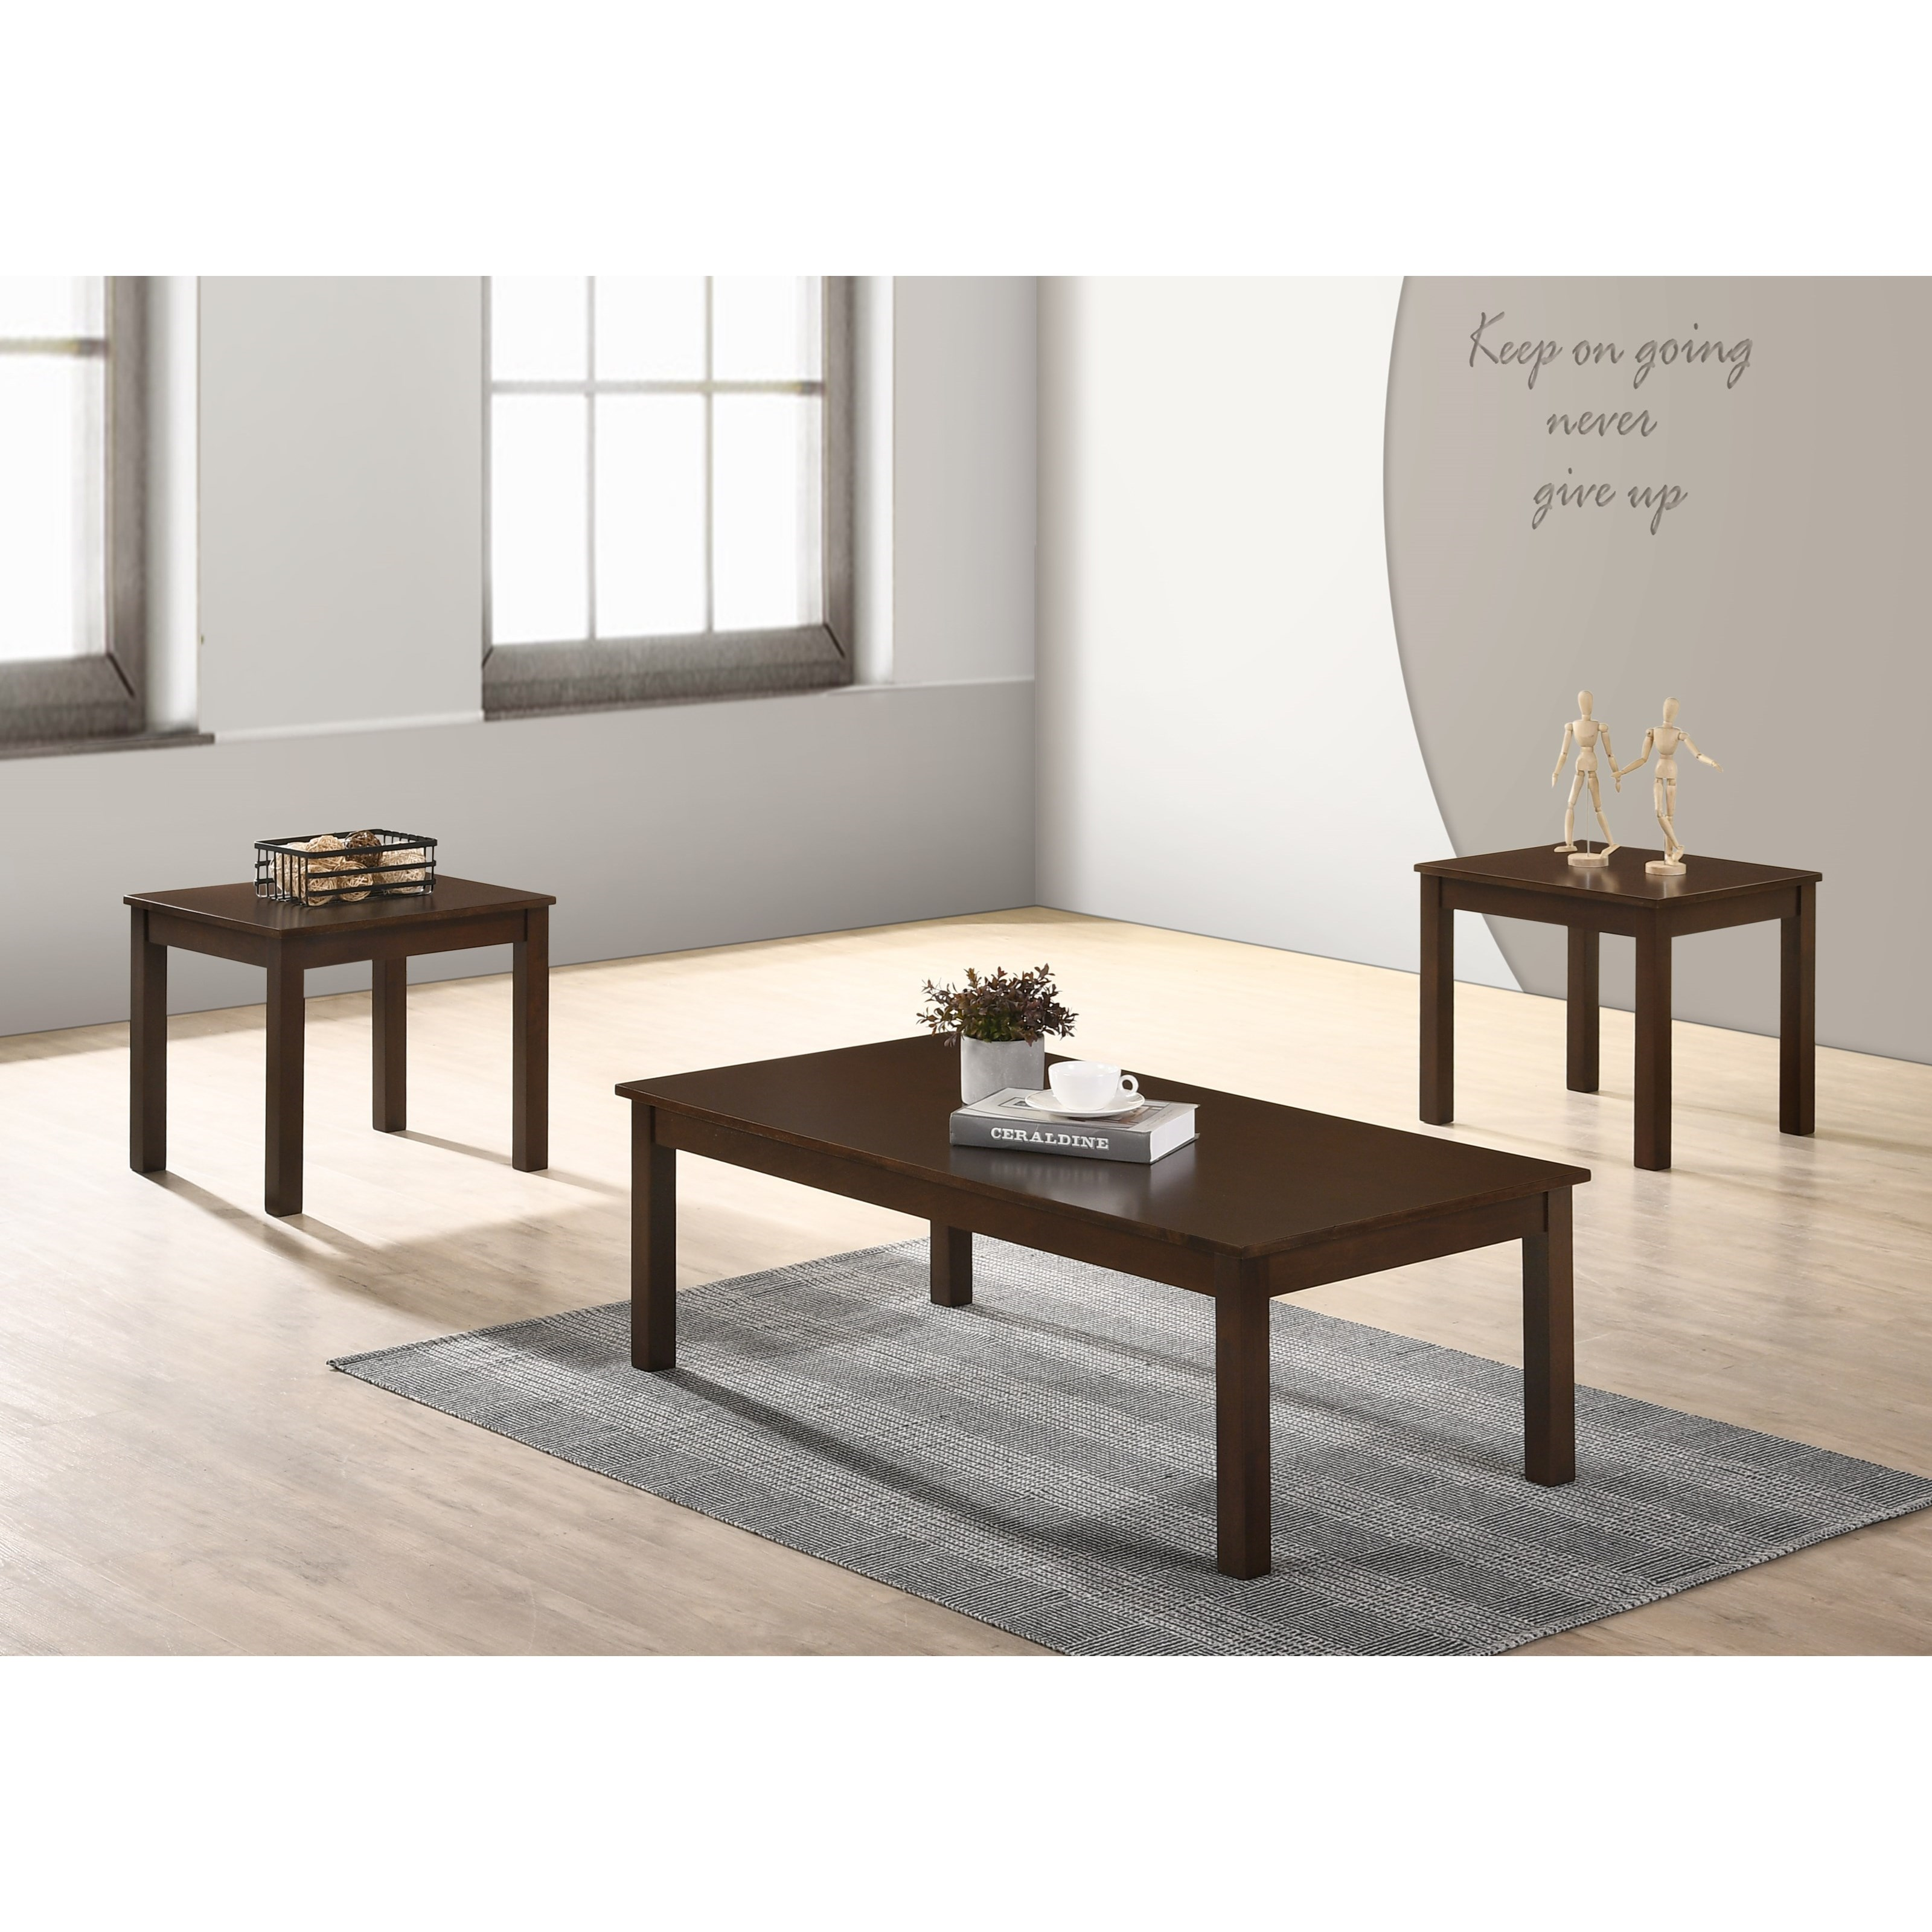 Pierce 3-Piece Occasional Table Set by Crown Mark at Northeast Factory Direct